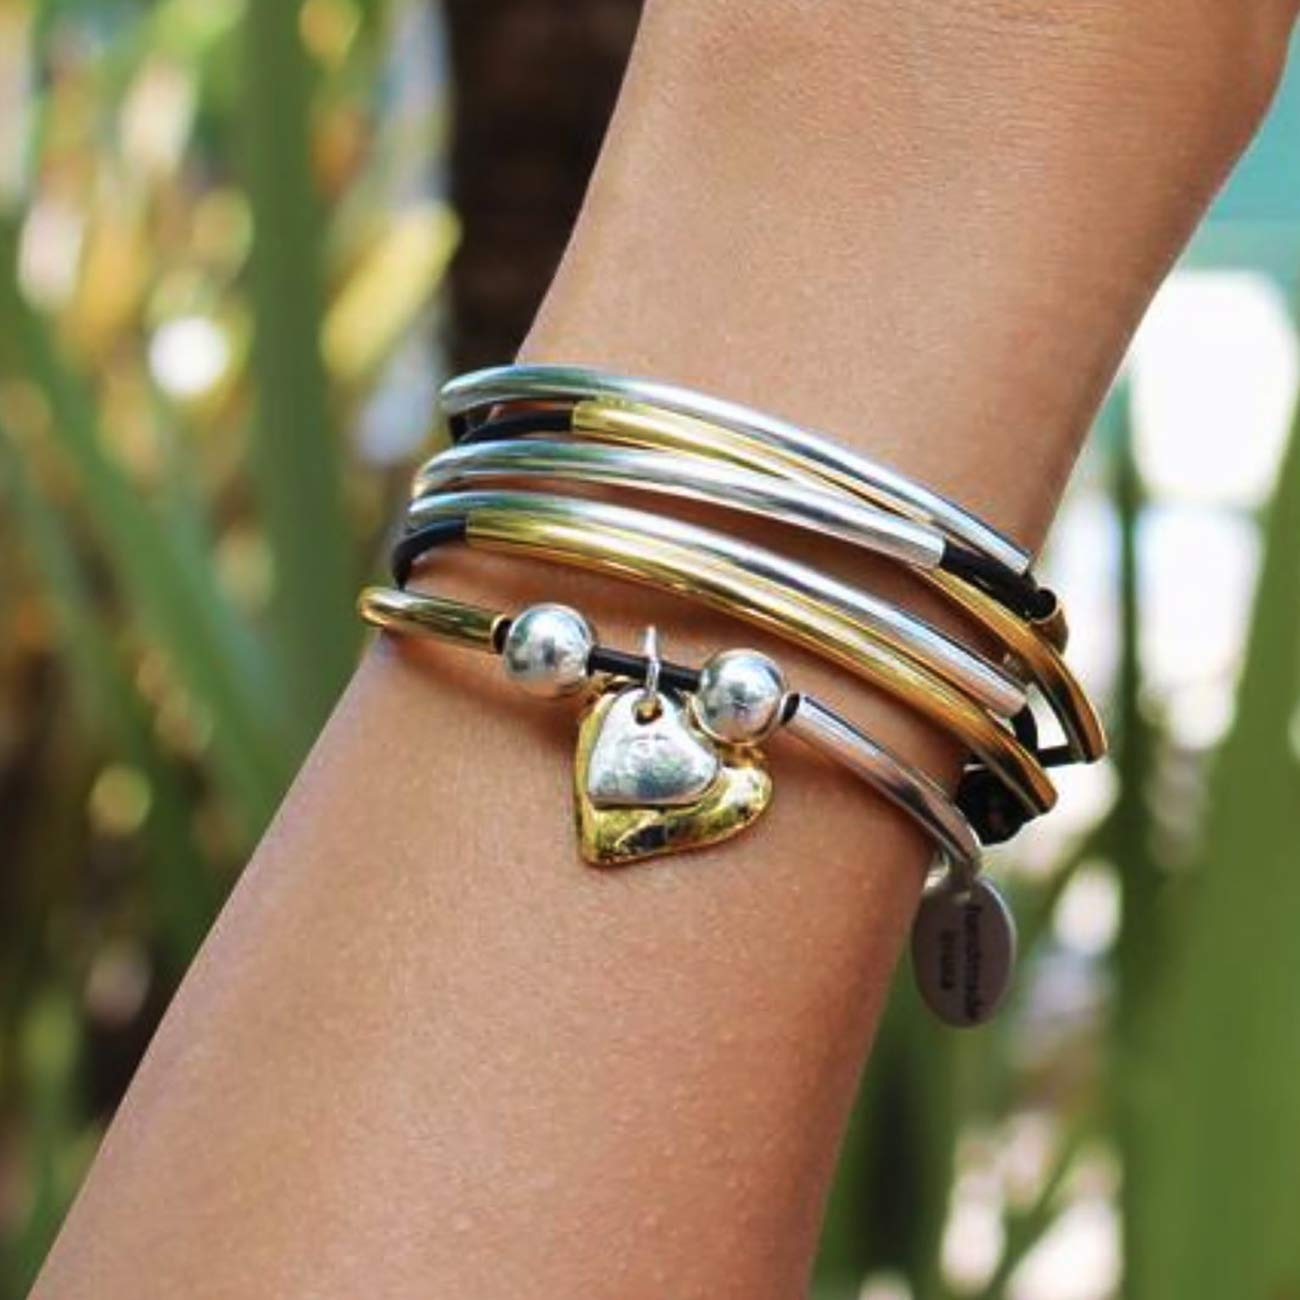 Lizzy James Girlfriend Silver and Gold Wrap Charm Bracelet Necklace w 2 Heart Charms in Natural Black Leather Lizzy James Jewelry